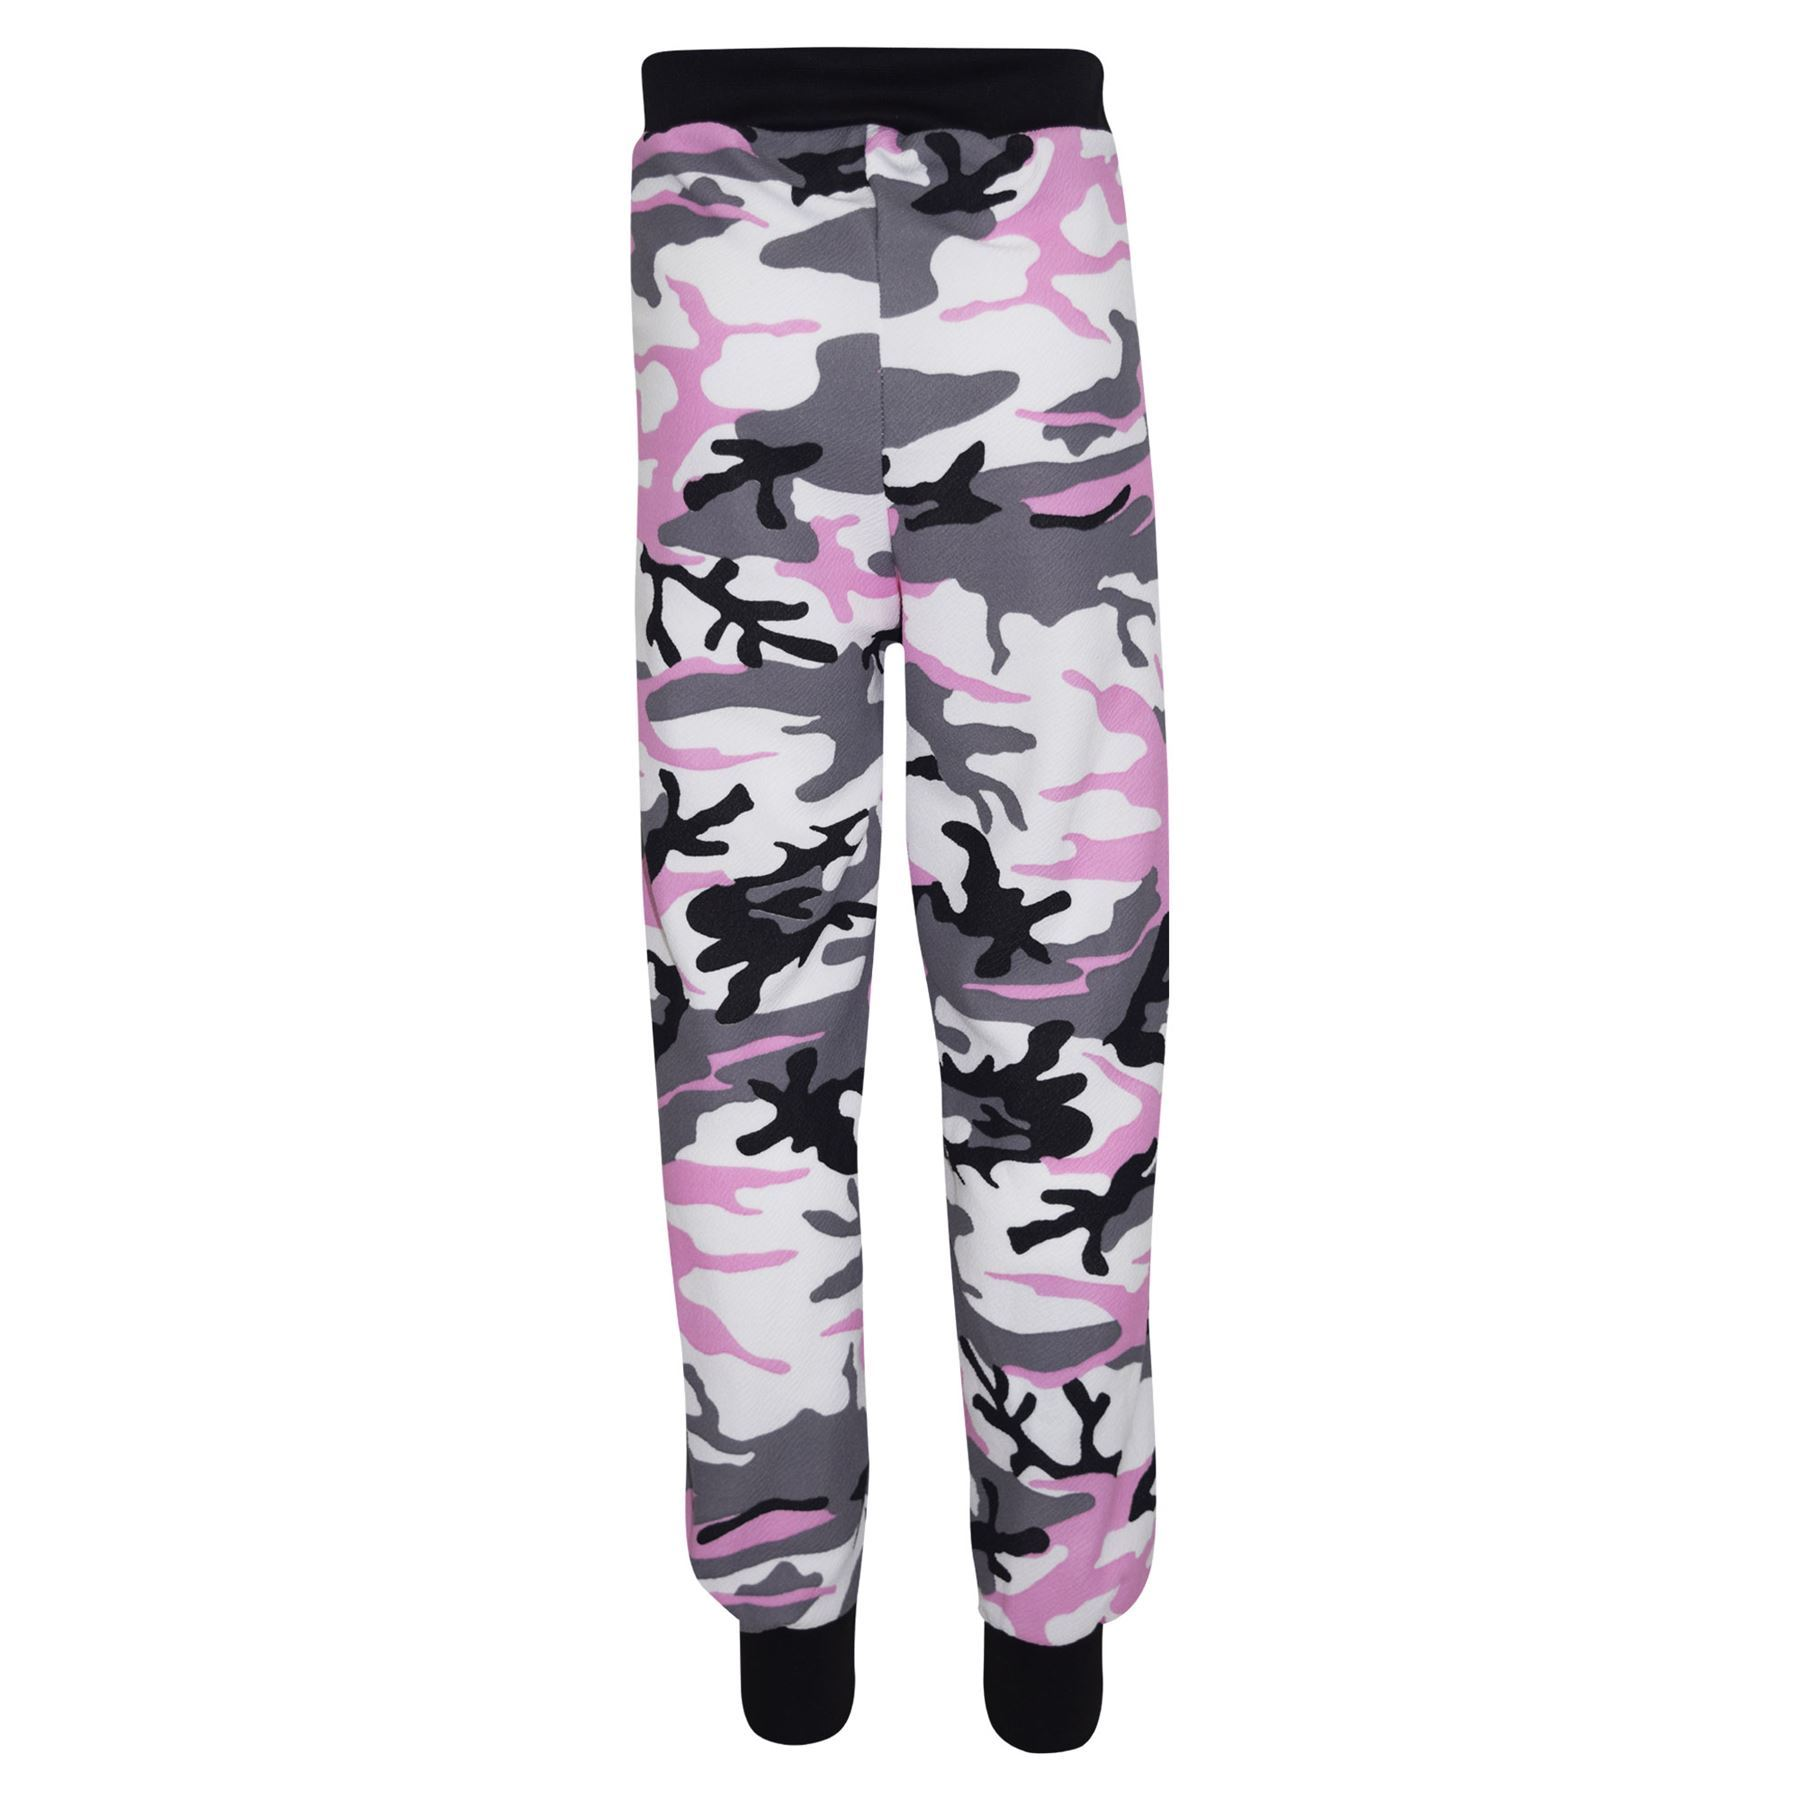 Kids-Girls-Camouflage-Print-Crop-Top-Legging-Jacket-Tracksuit-Age-7-13-Years miniatuur 16